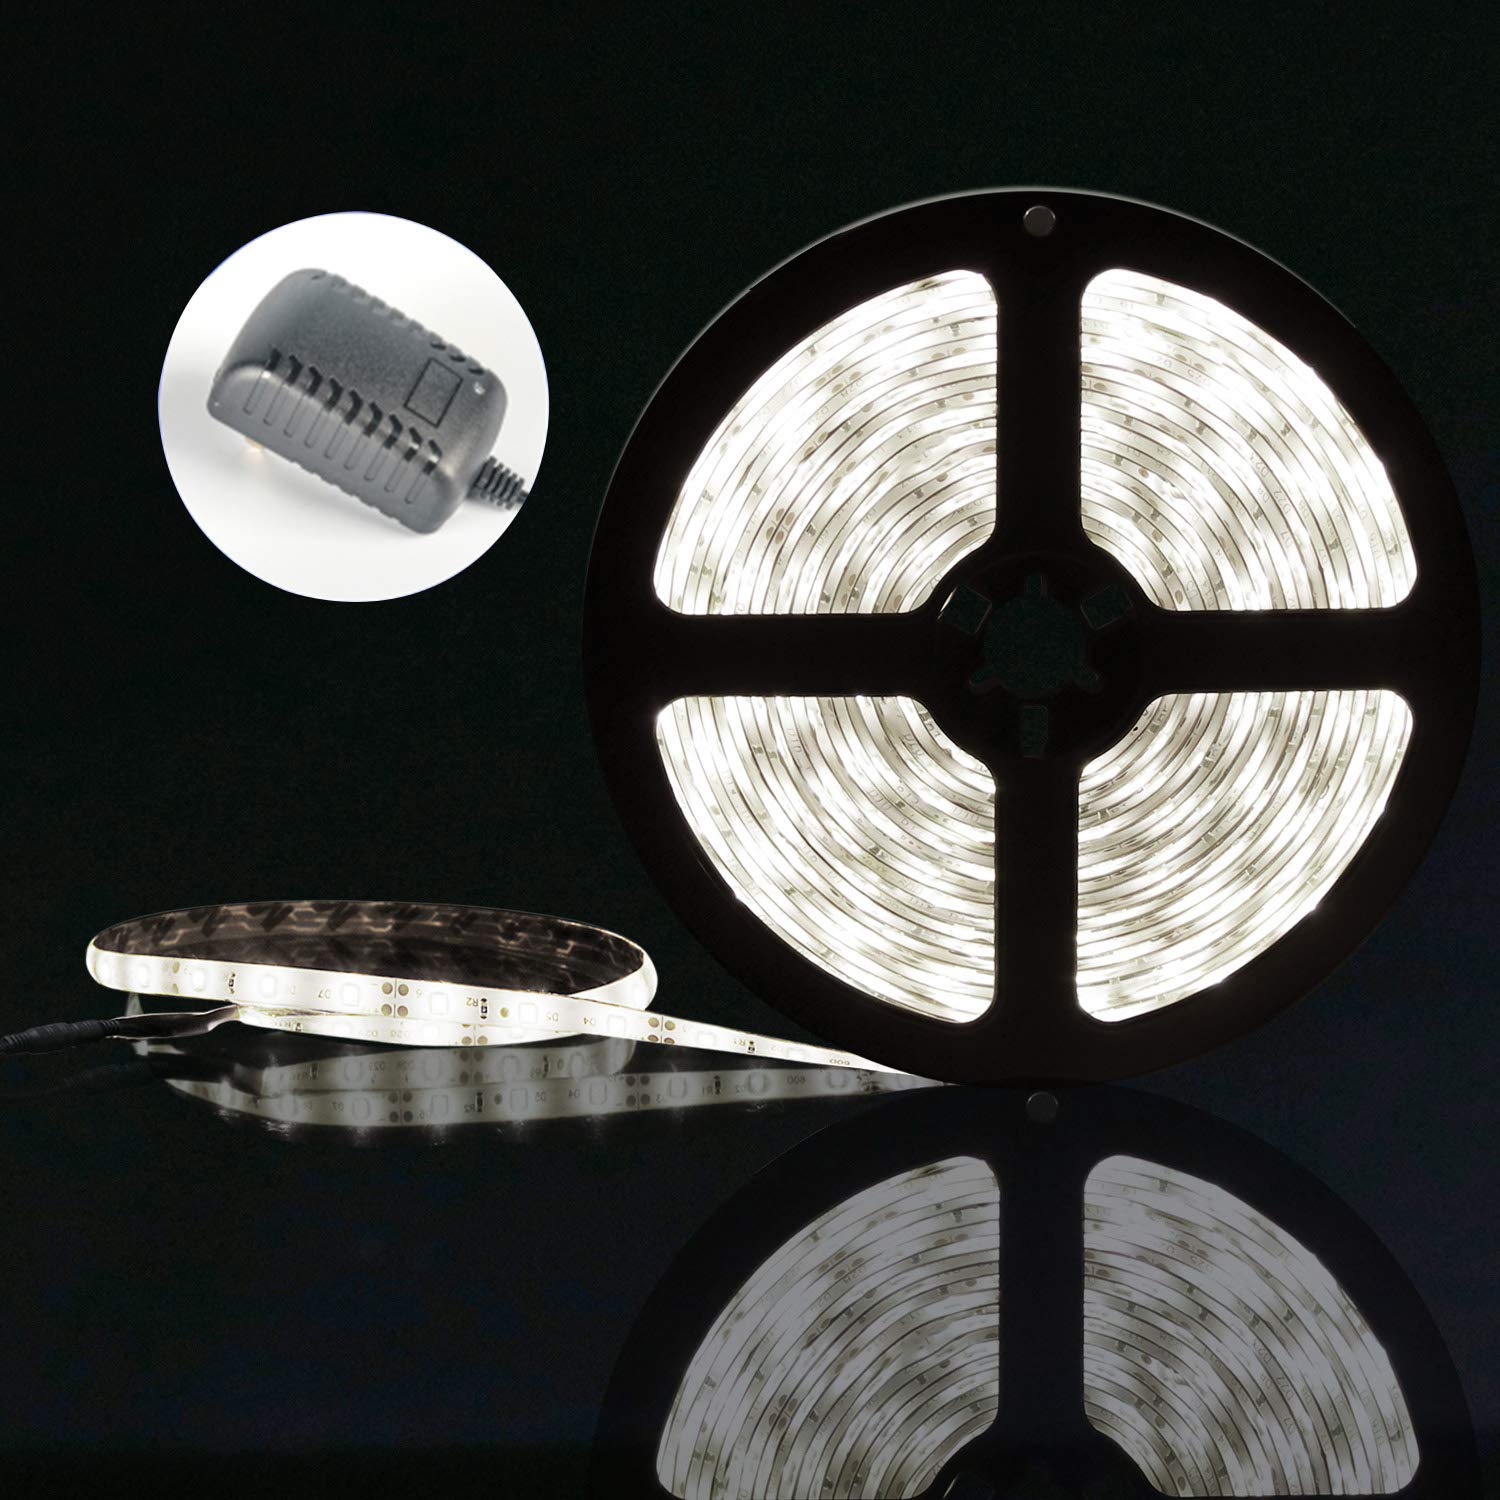 LED Strip Lights with Power Supply-16.4ft/5m Flexible Strip Light, 300 LED Daylight White Under Cabinet Lighting Strip, Waterproof LED Tape for Home Kitchen Car Bar